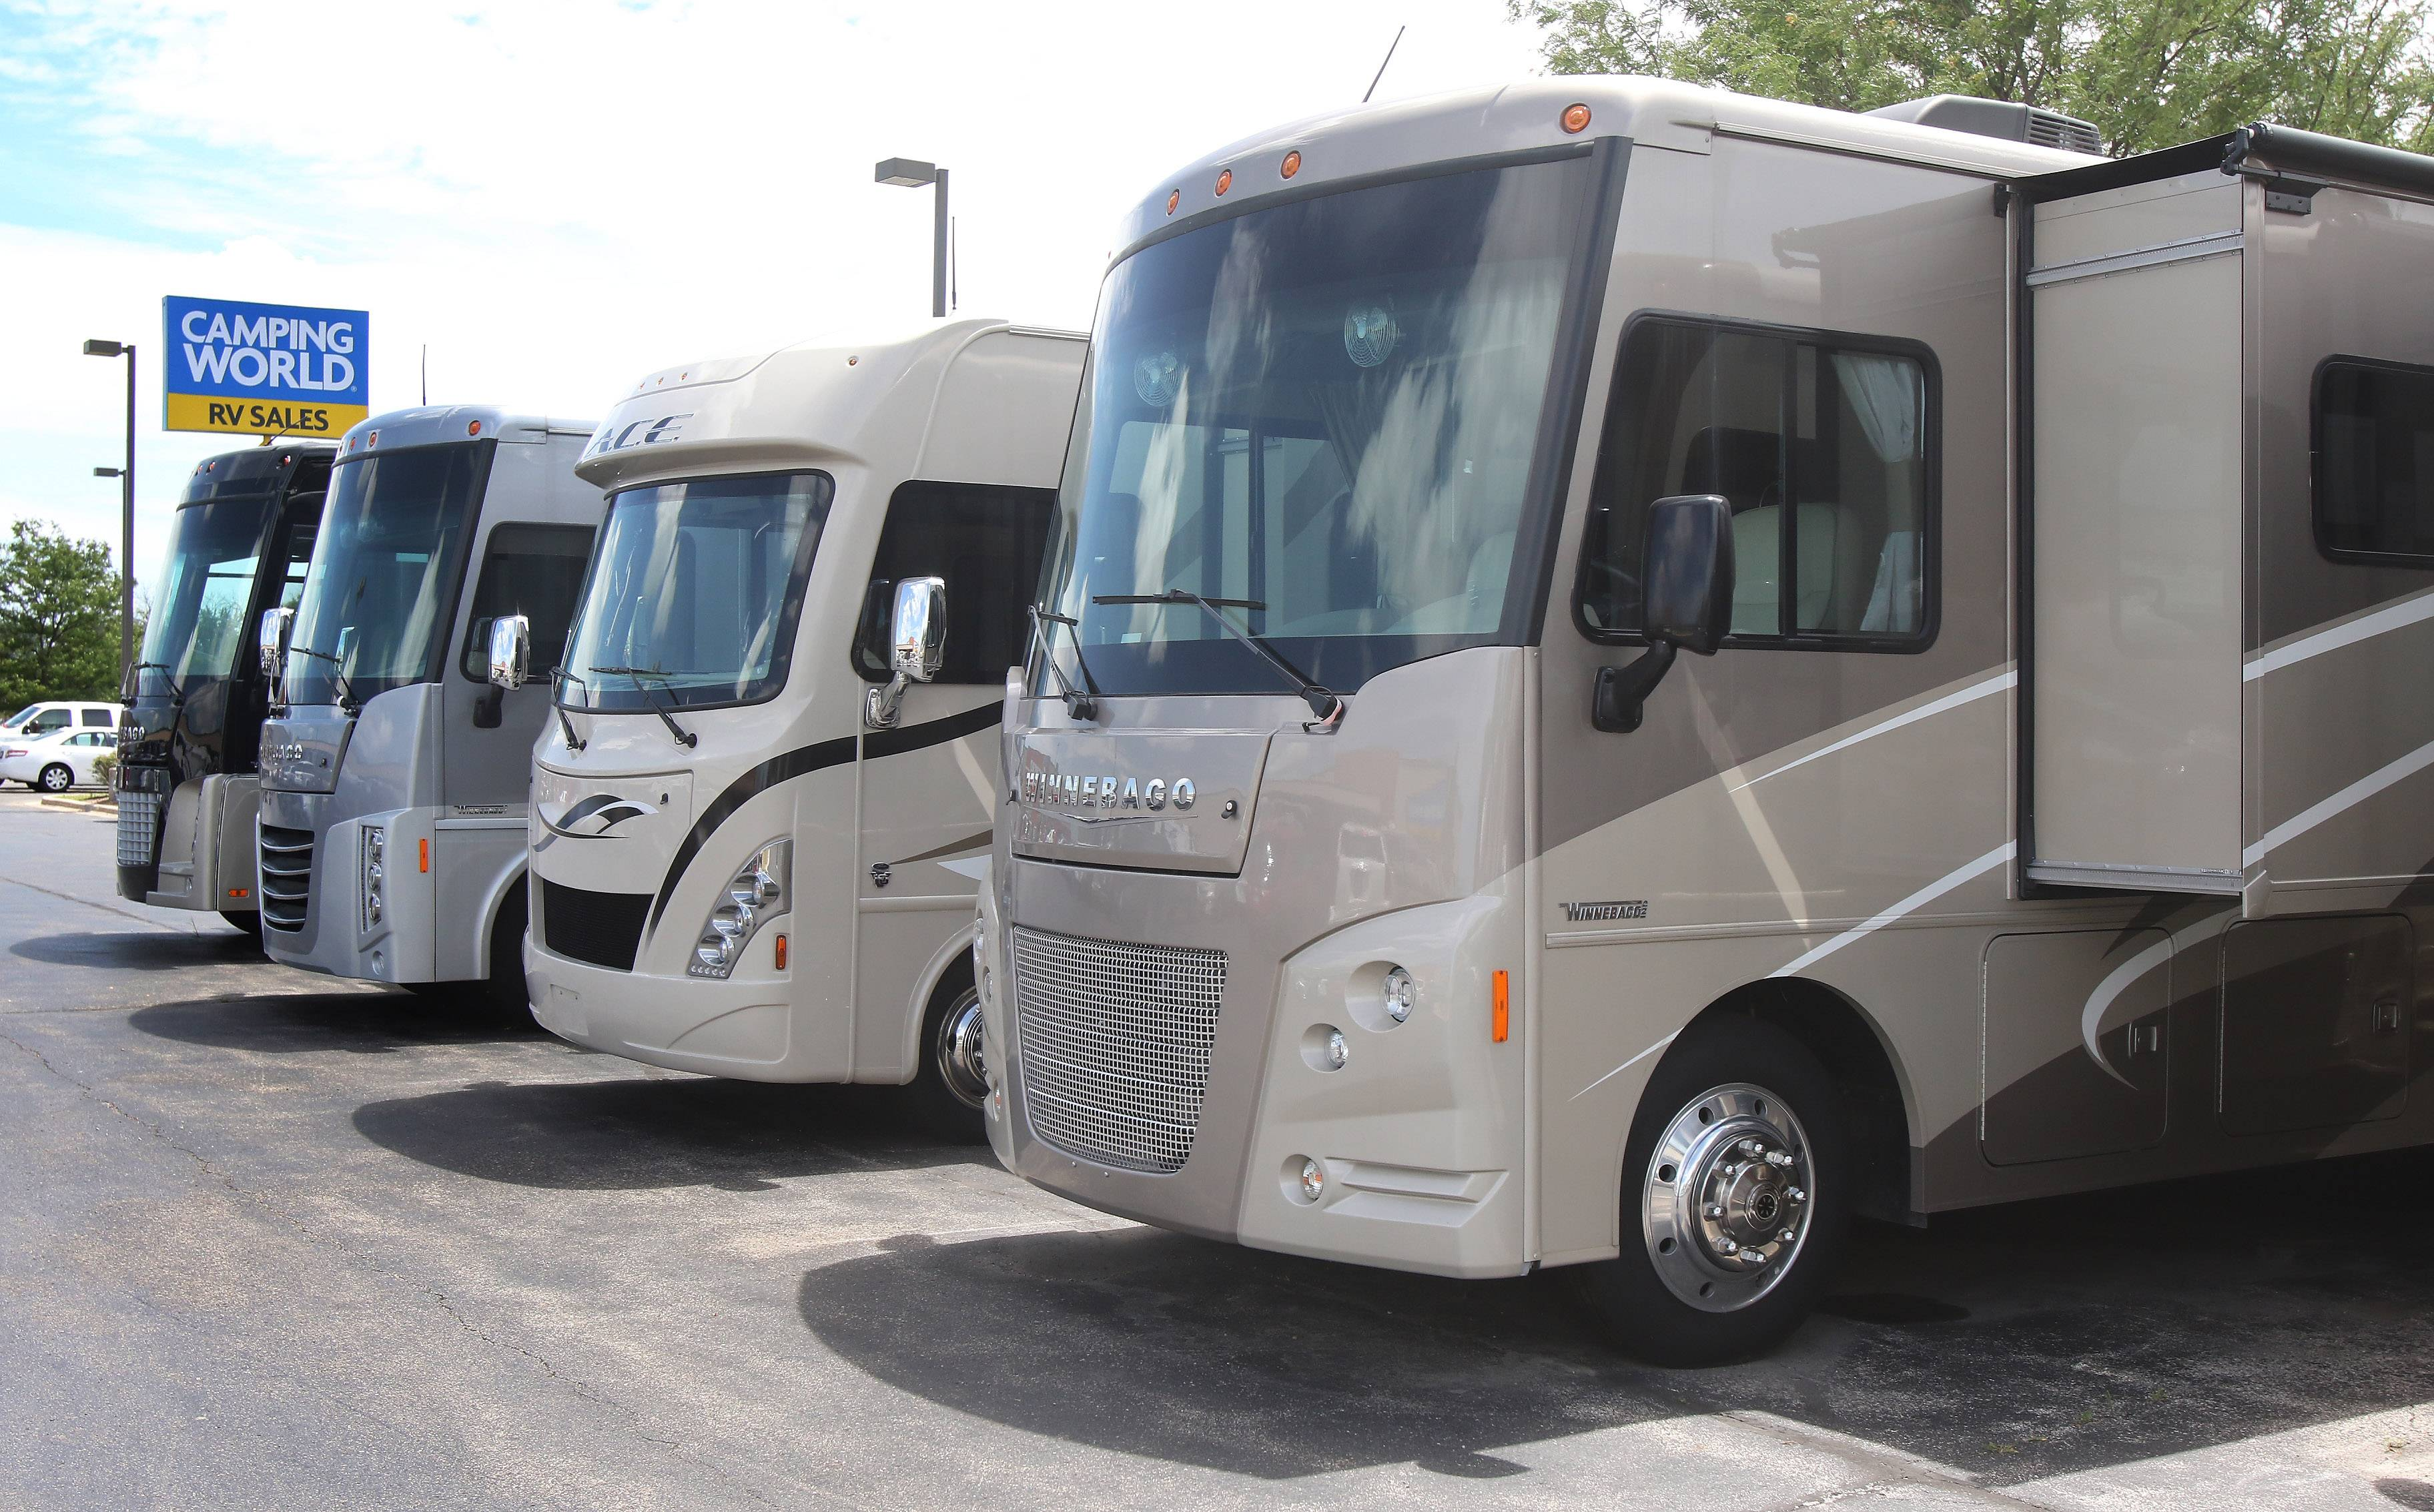 Recreational vehicles at Camping World in Wauconda. CEO Marcus Lemonis turned Camping World into a multibillion-dollar RV company nationwide. The company is expanding to Pittsburgh.